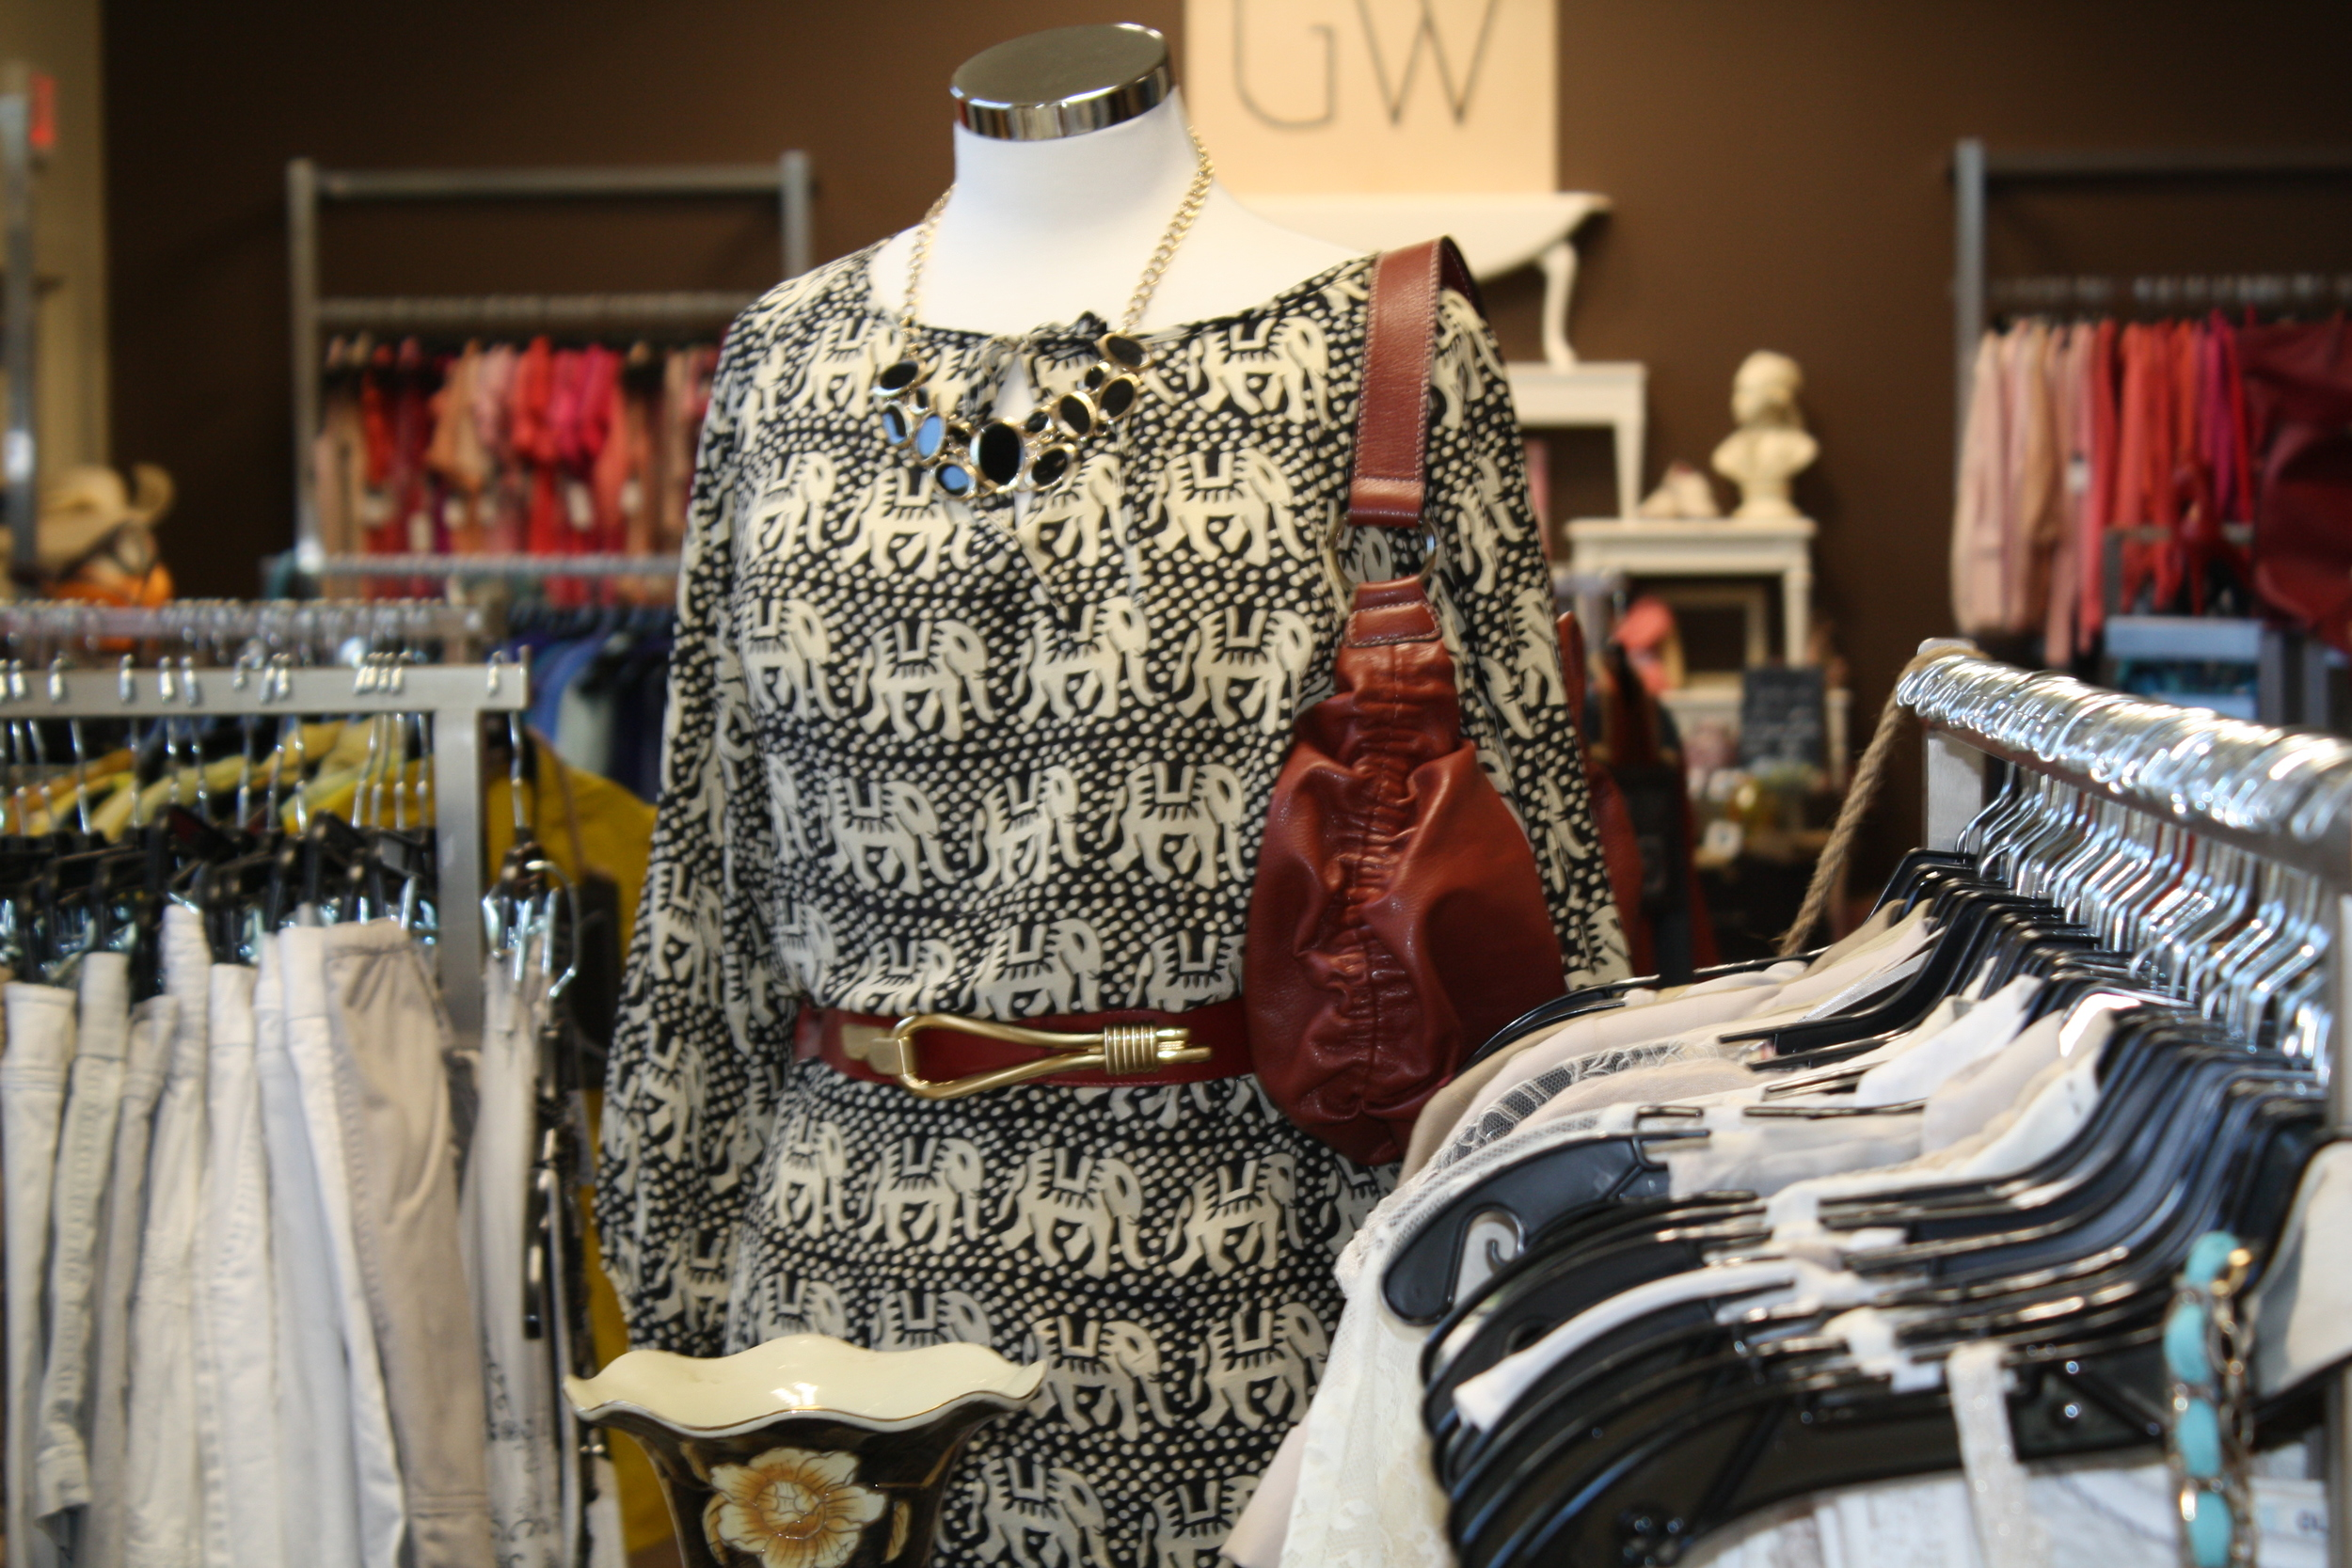 Elephant tunic, cognac belt and purse. Your next fave outfit. Done.